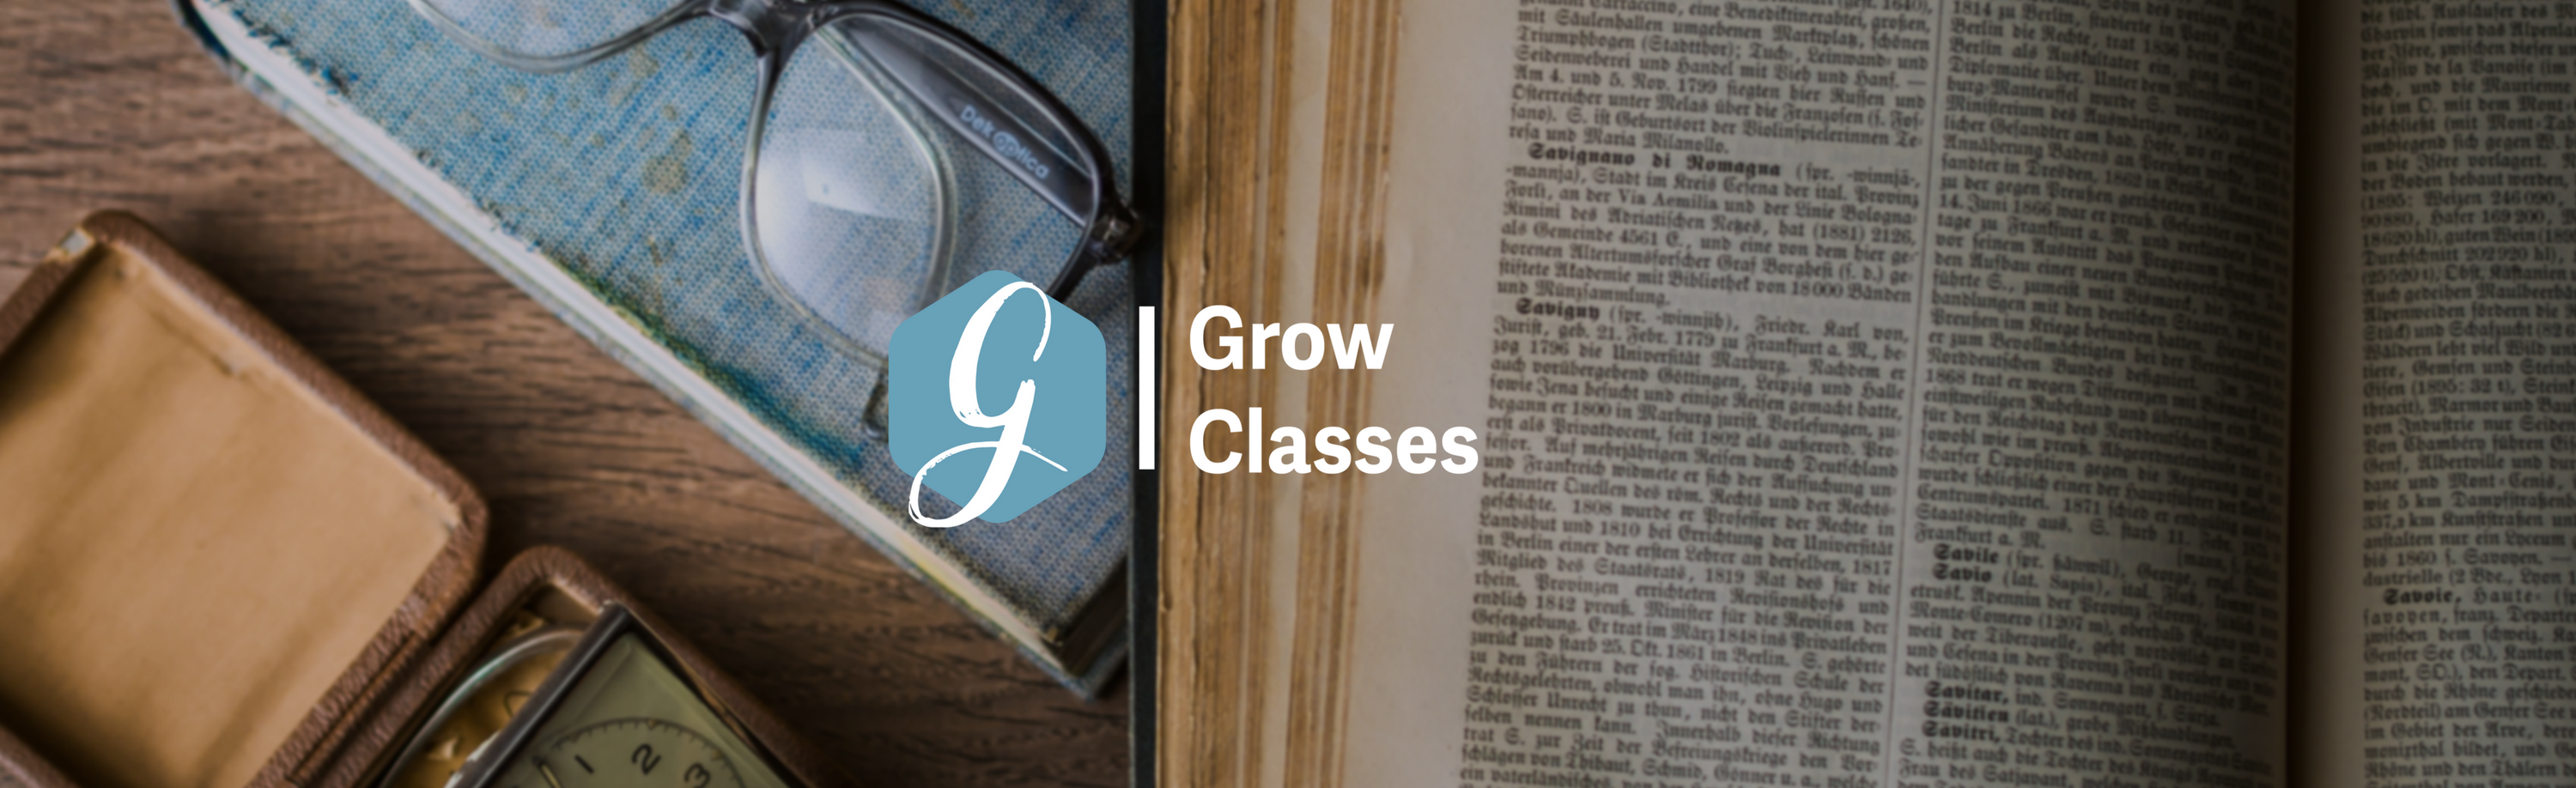 Grow Classes image